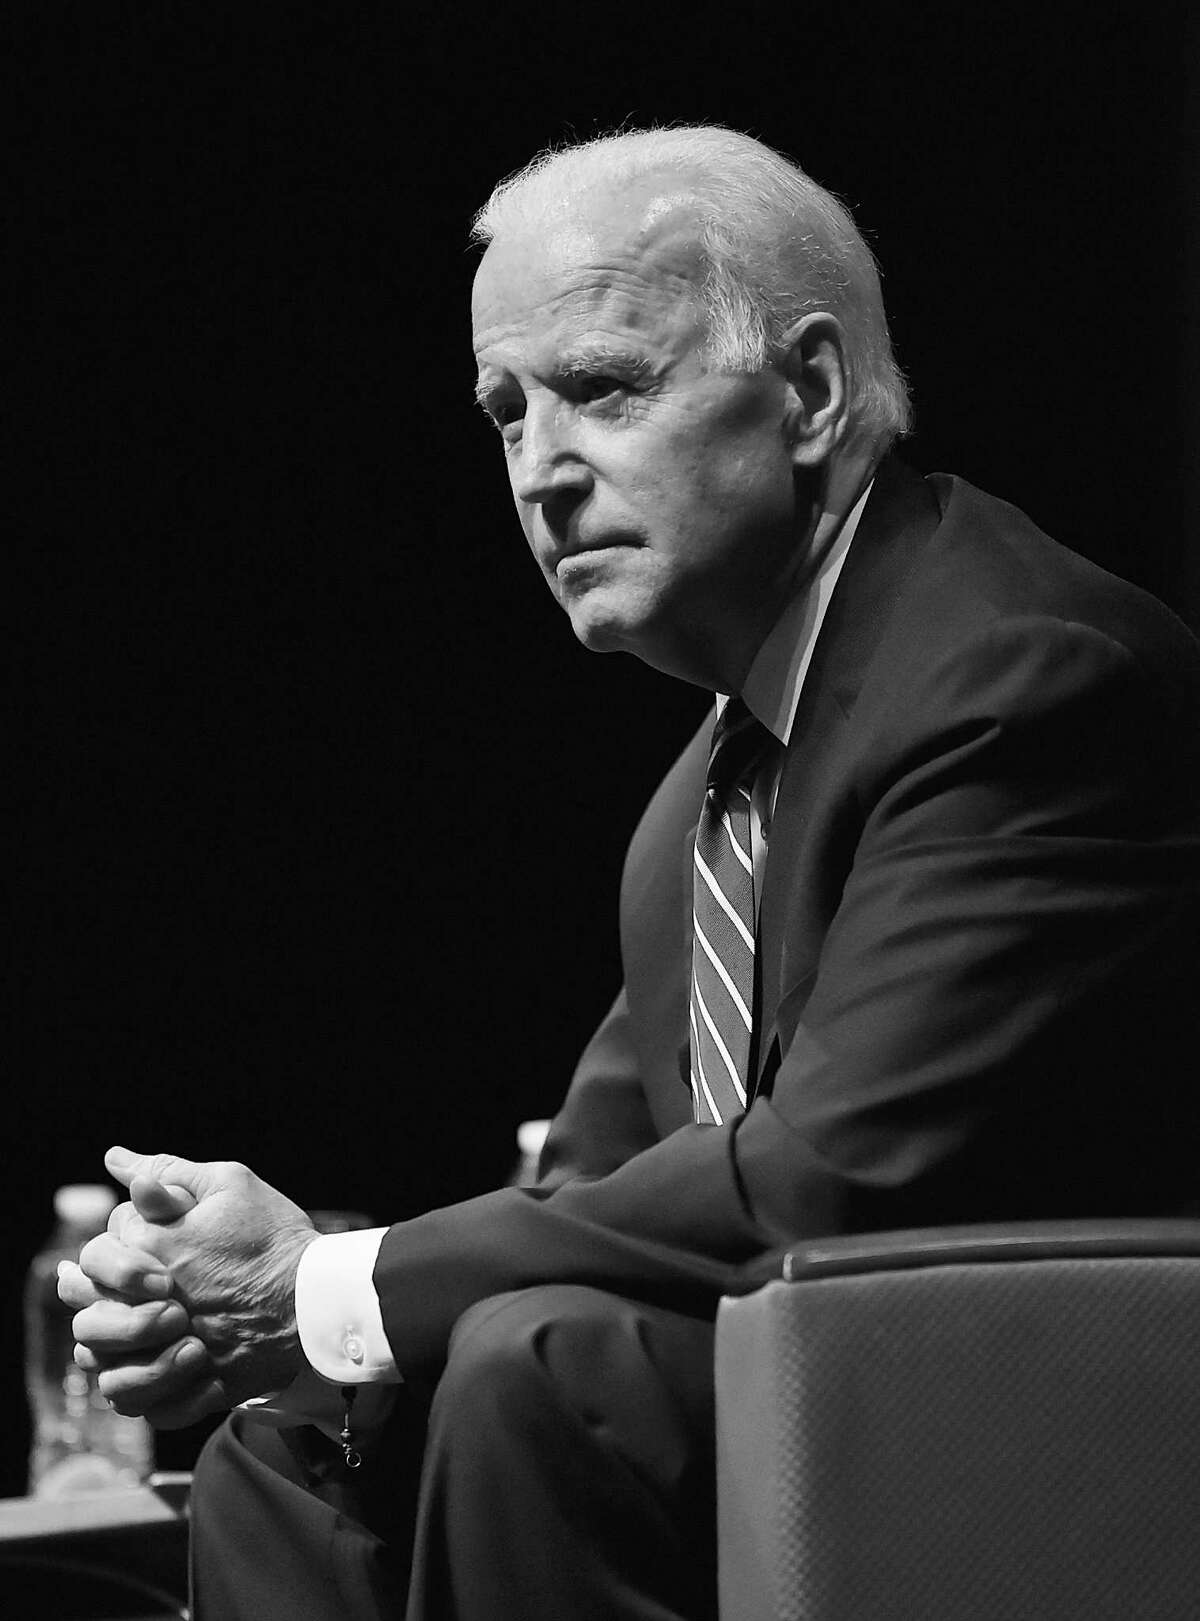 Former Vice President Joe Biden engages in a moderated conversation with WNPR Lucy Nalpathanchil at the 20th annual Mary and Louis Fusco Distinguished Lecture Series at the John Lyman Center for the Performing Arts at Southern Connecticut State University, Friday, March 23, 2018